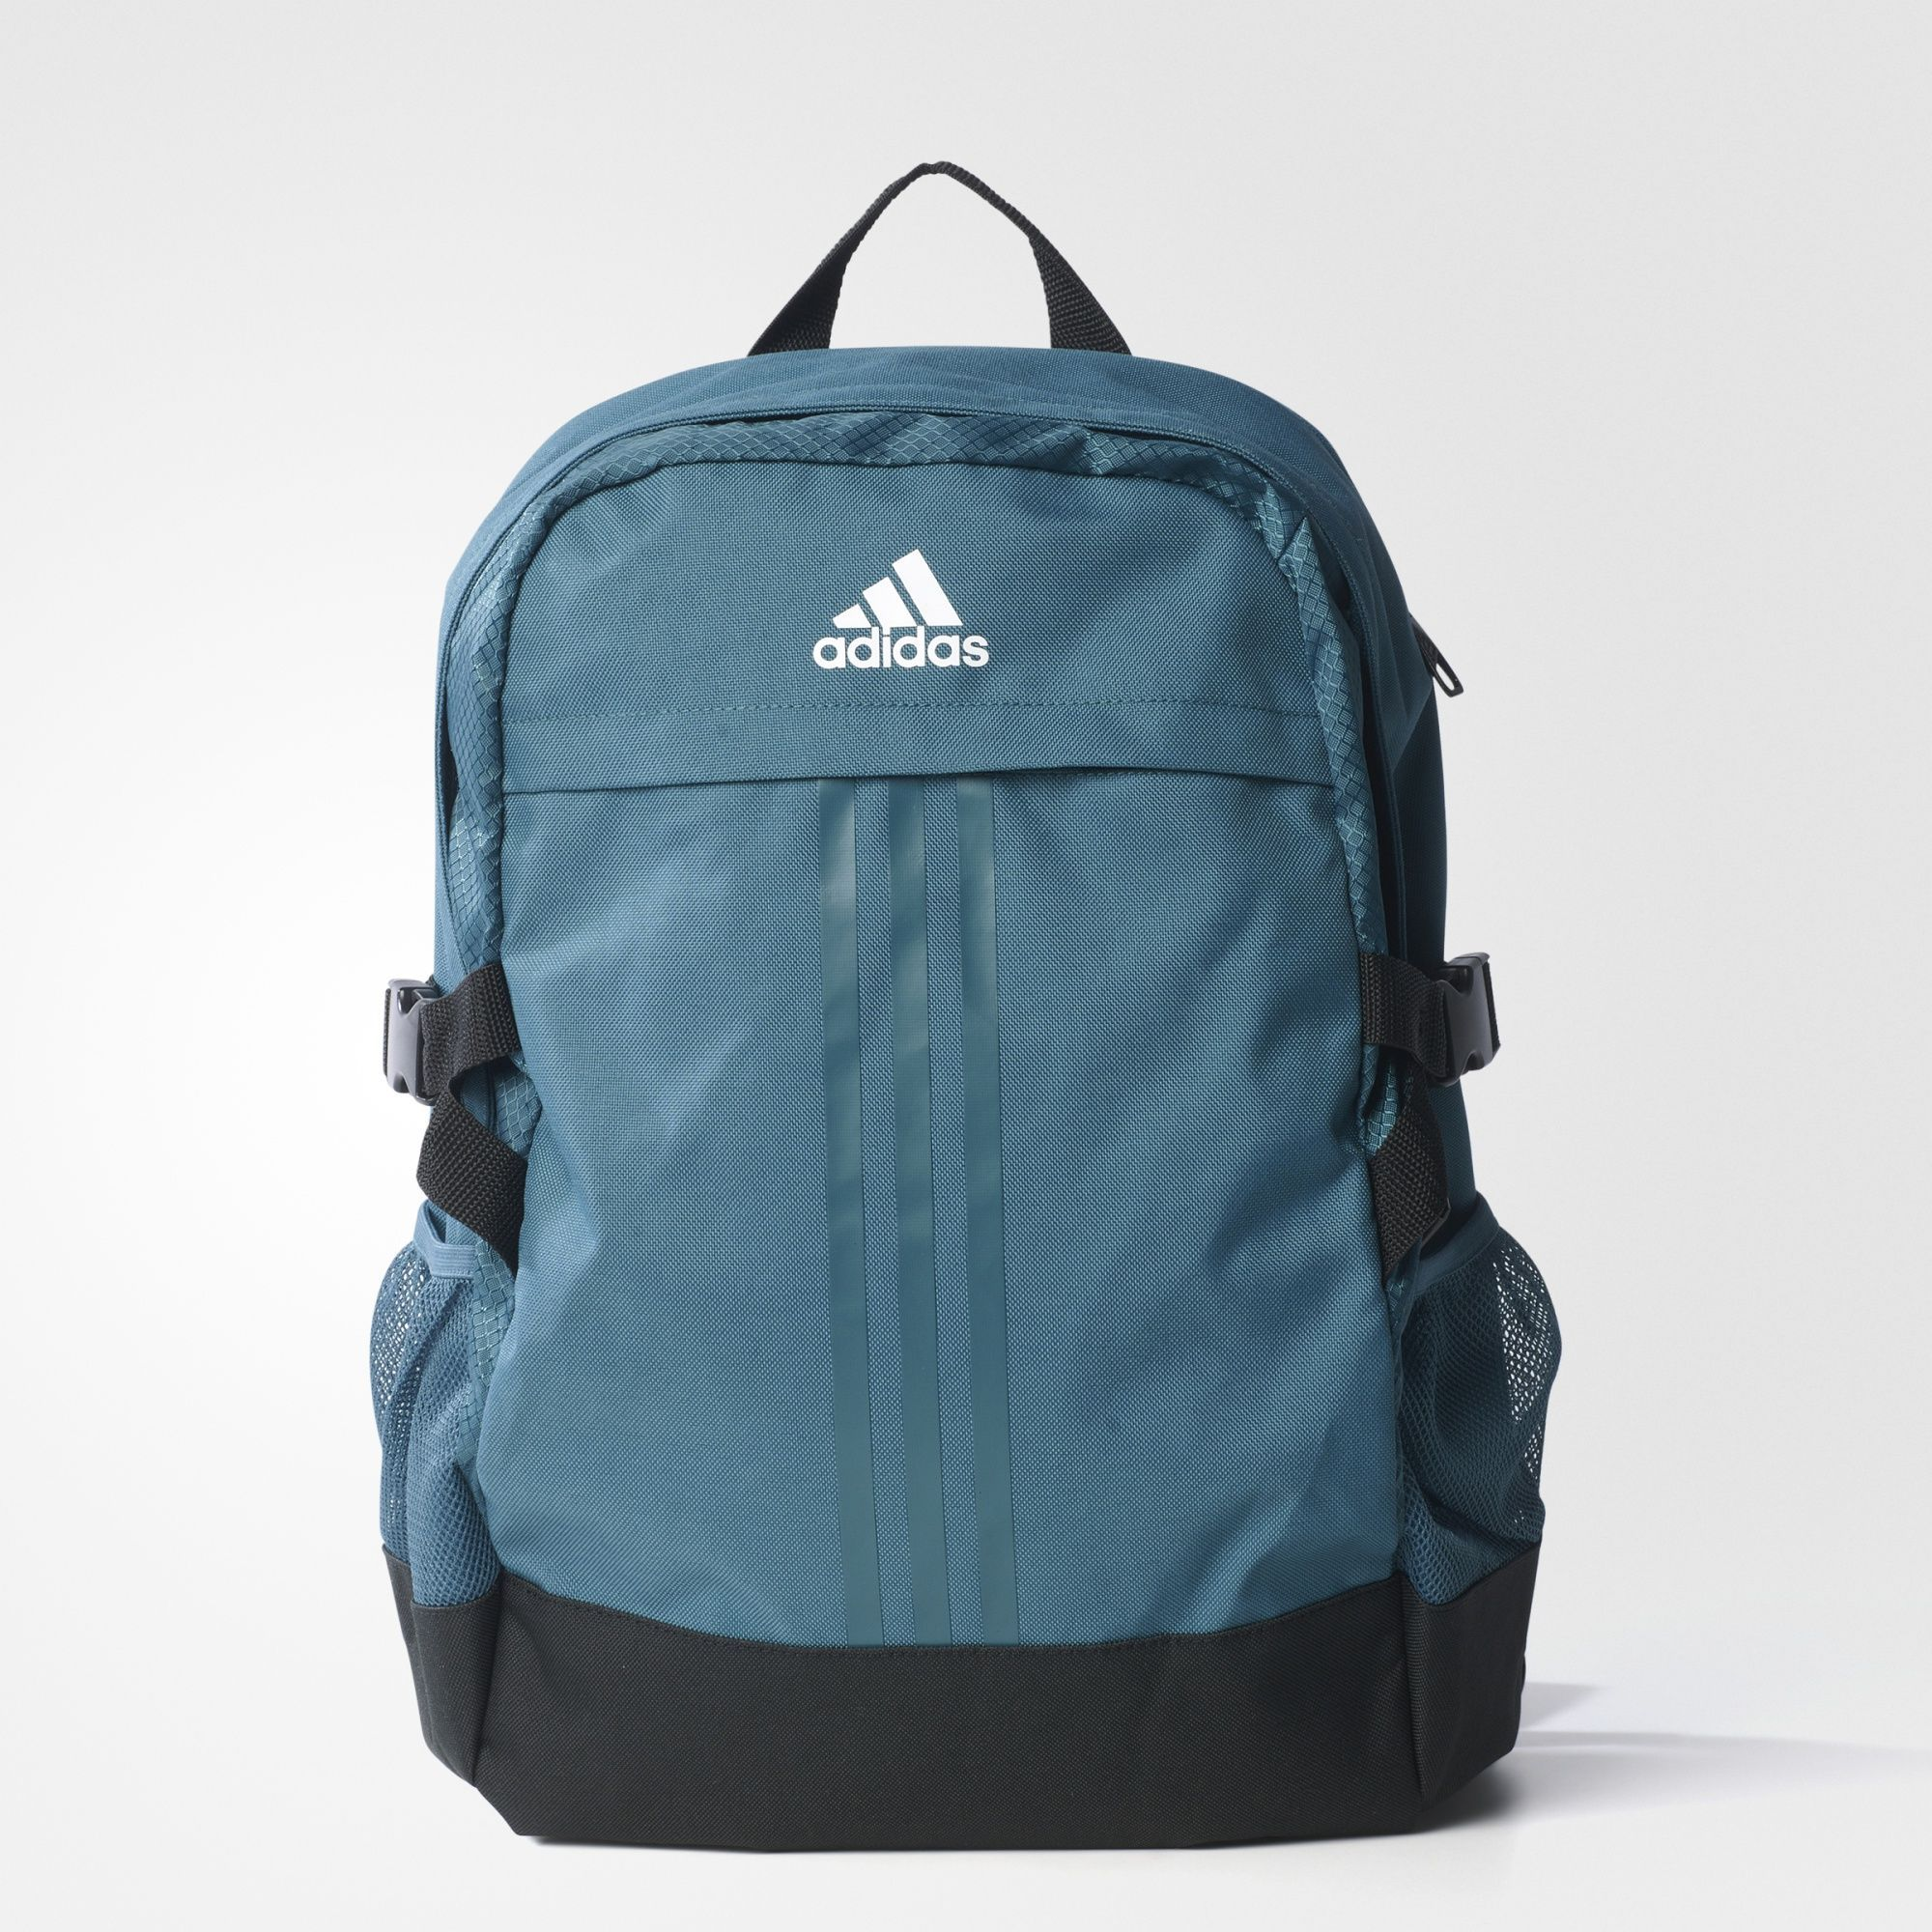 adidas Power 3 Backpack Medium | Adidas ve Okul